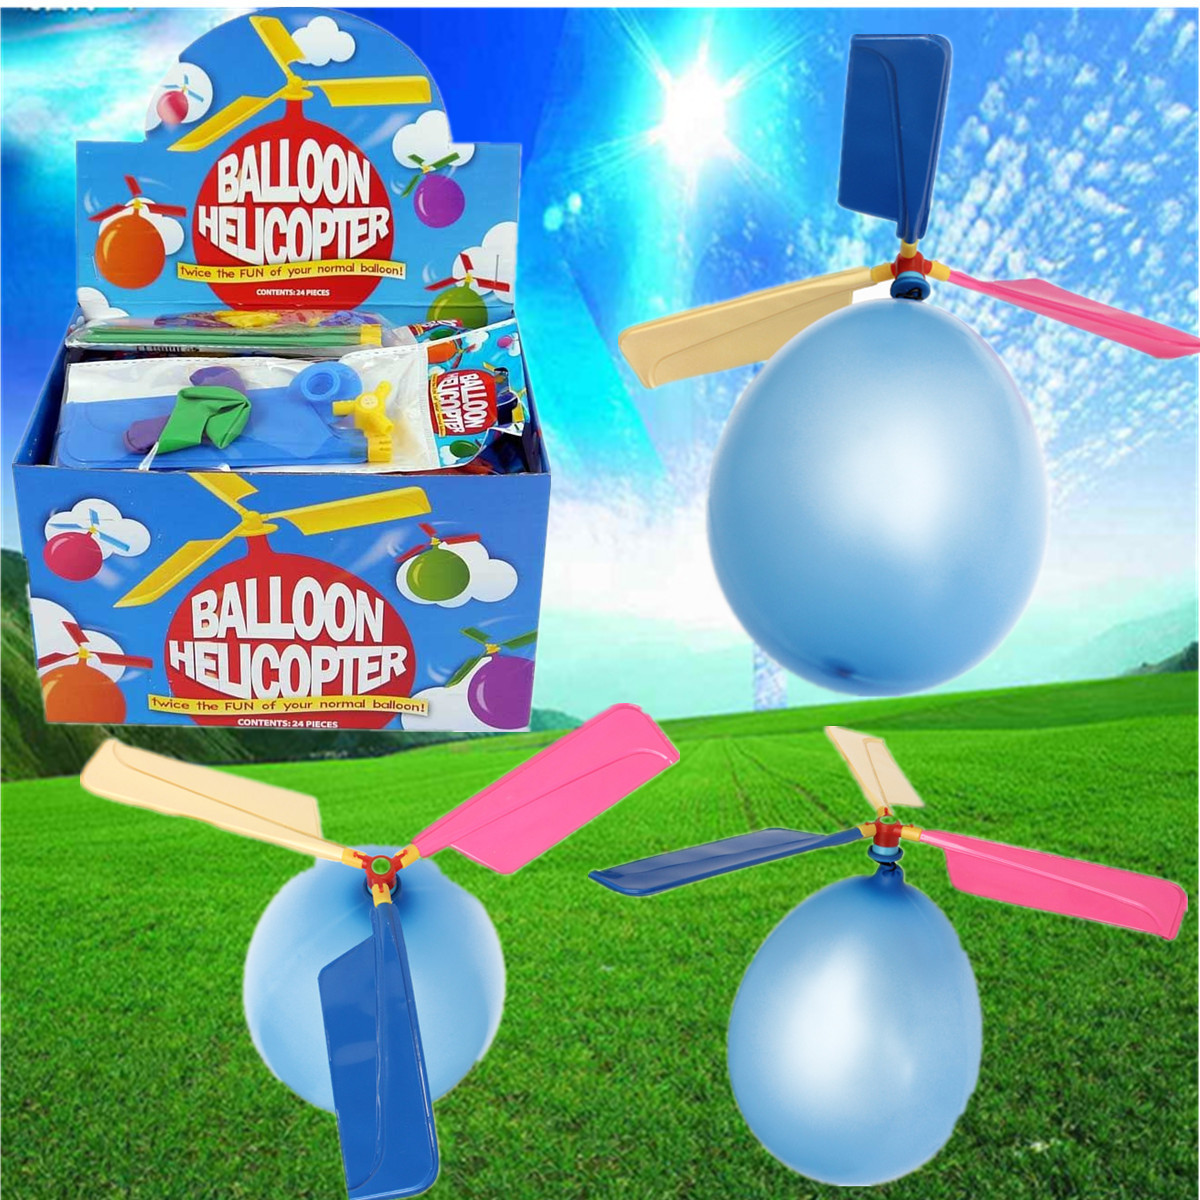 20X Colorful Traditional Classic Balloon Helicopter Portable Flying Toy - Photo: 1